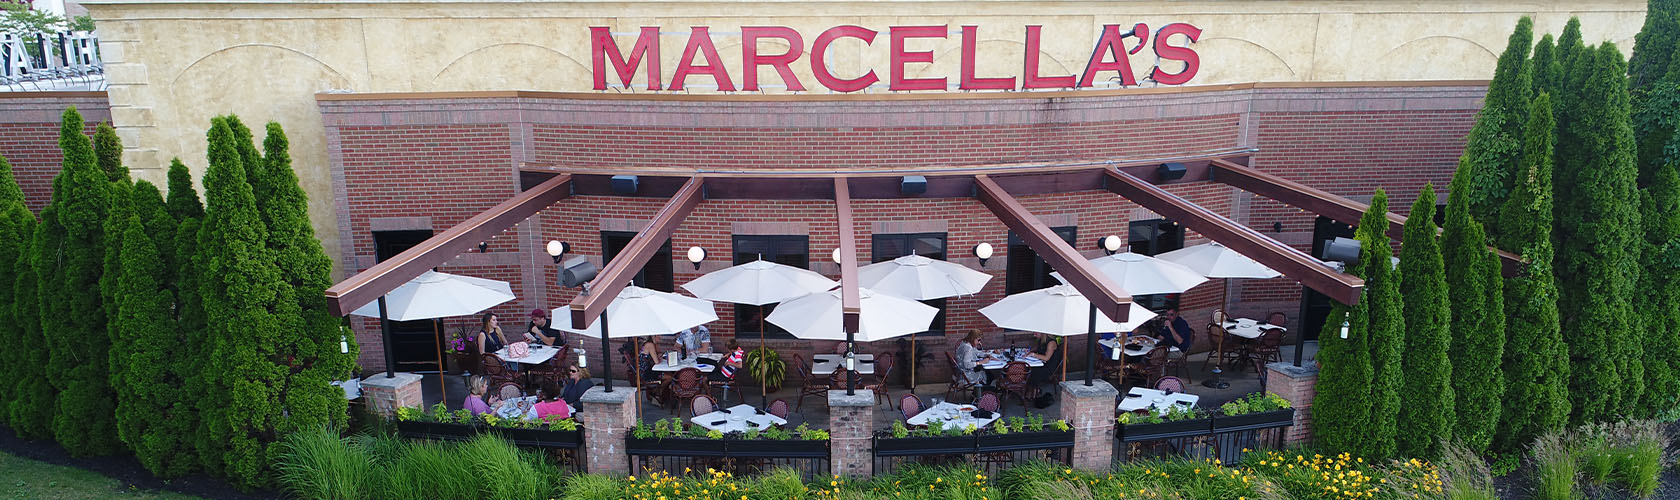 The outdoor patio dining at Marcella's Polaris